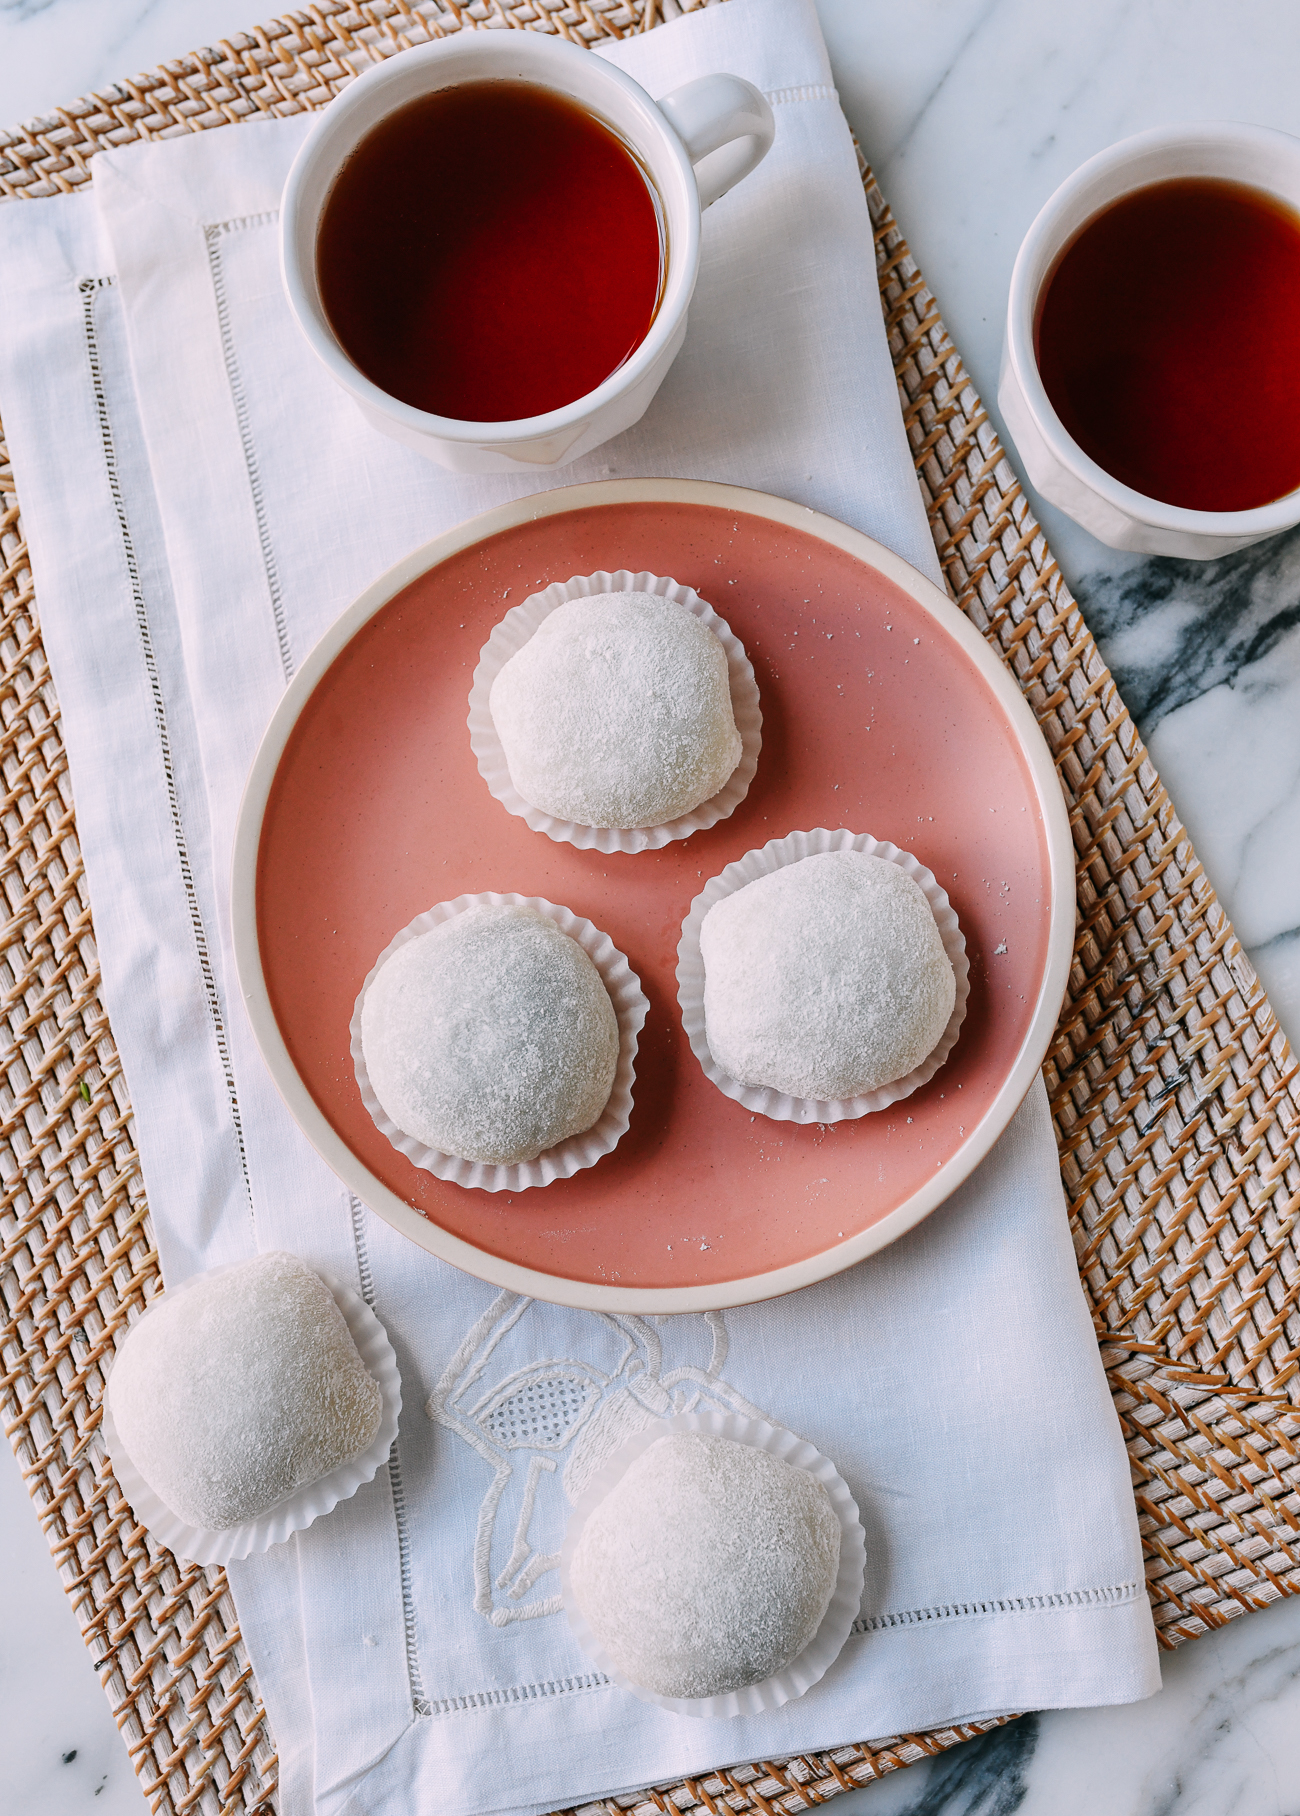 Mochi balls in paper cups on pink plate